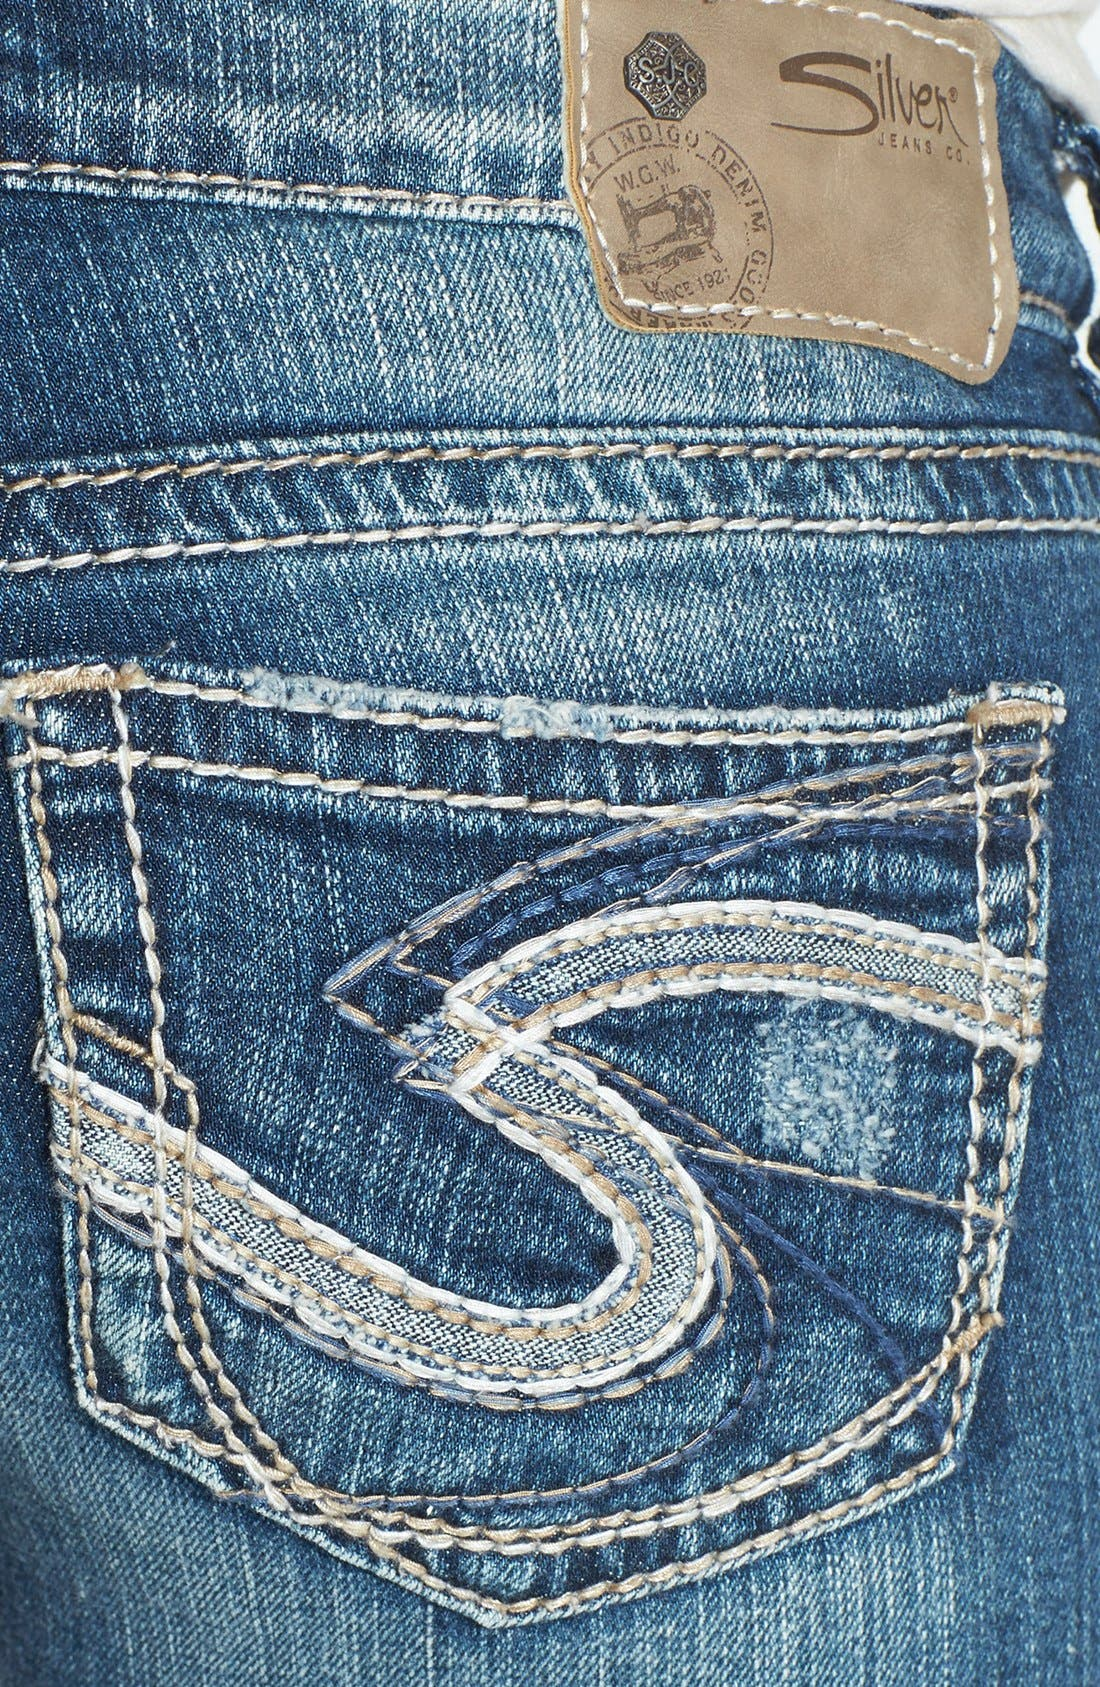 Alternate Image 3  - Silver Jeans Co. 'Tuesday' Distressed Bootcut Jeans (Indigo)